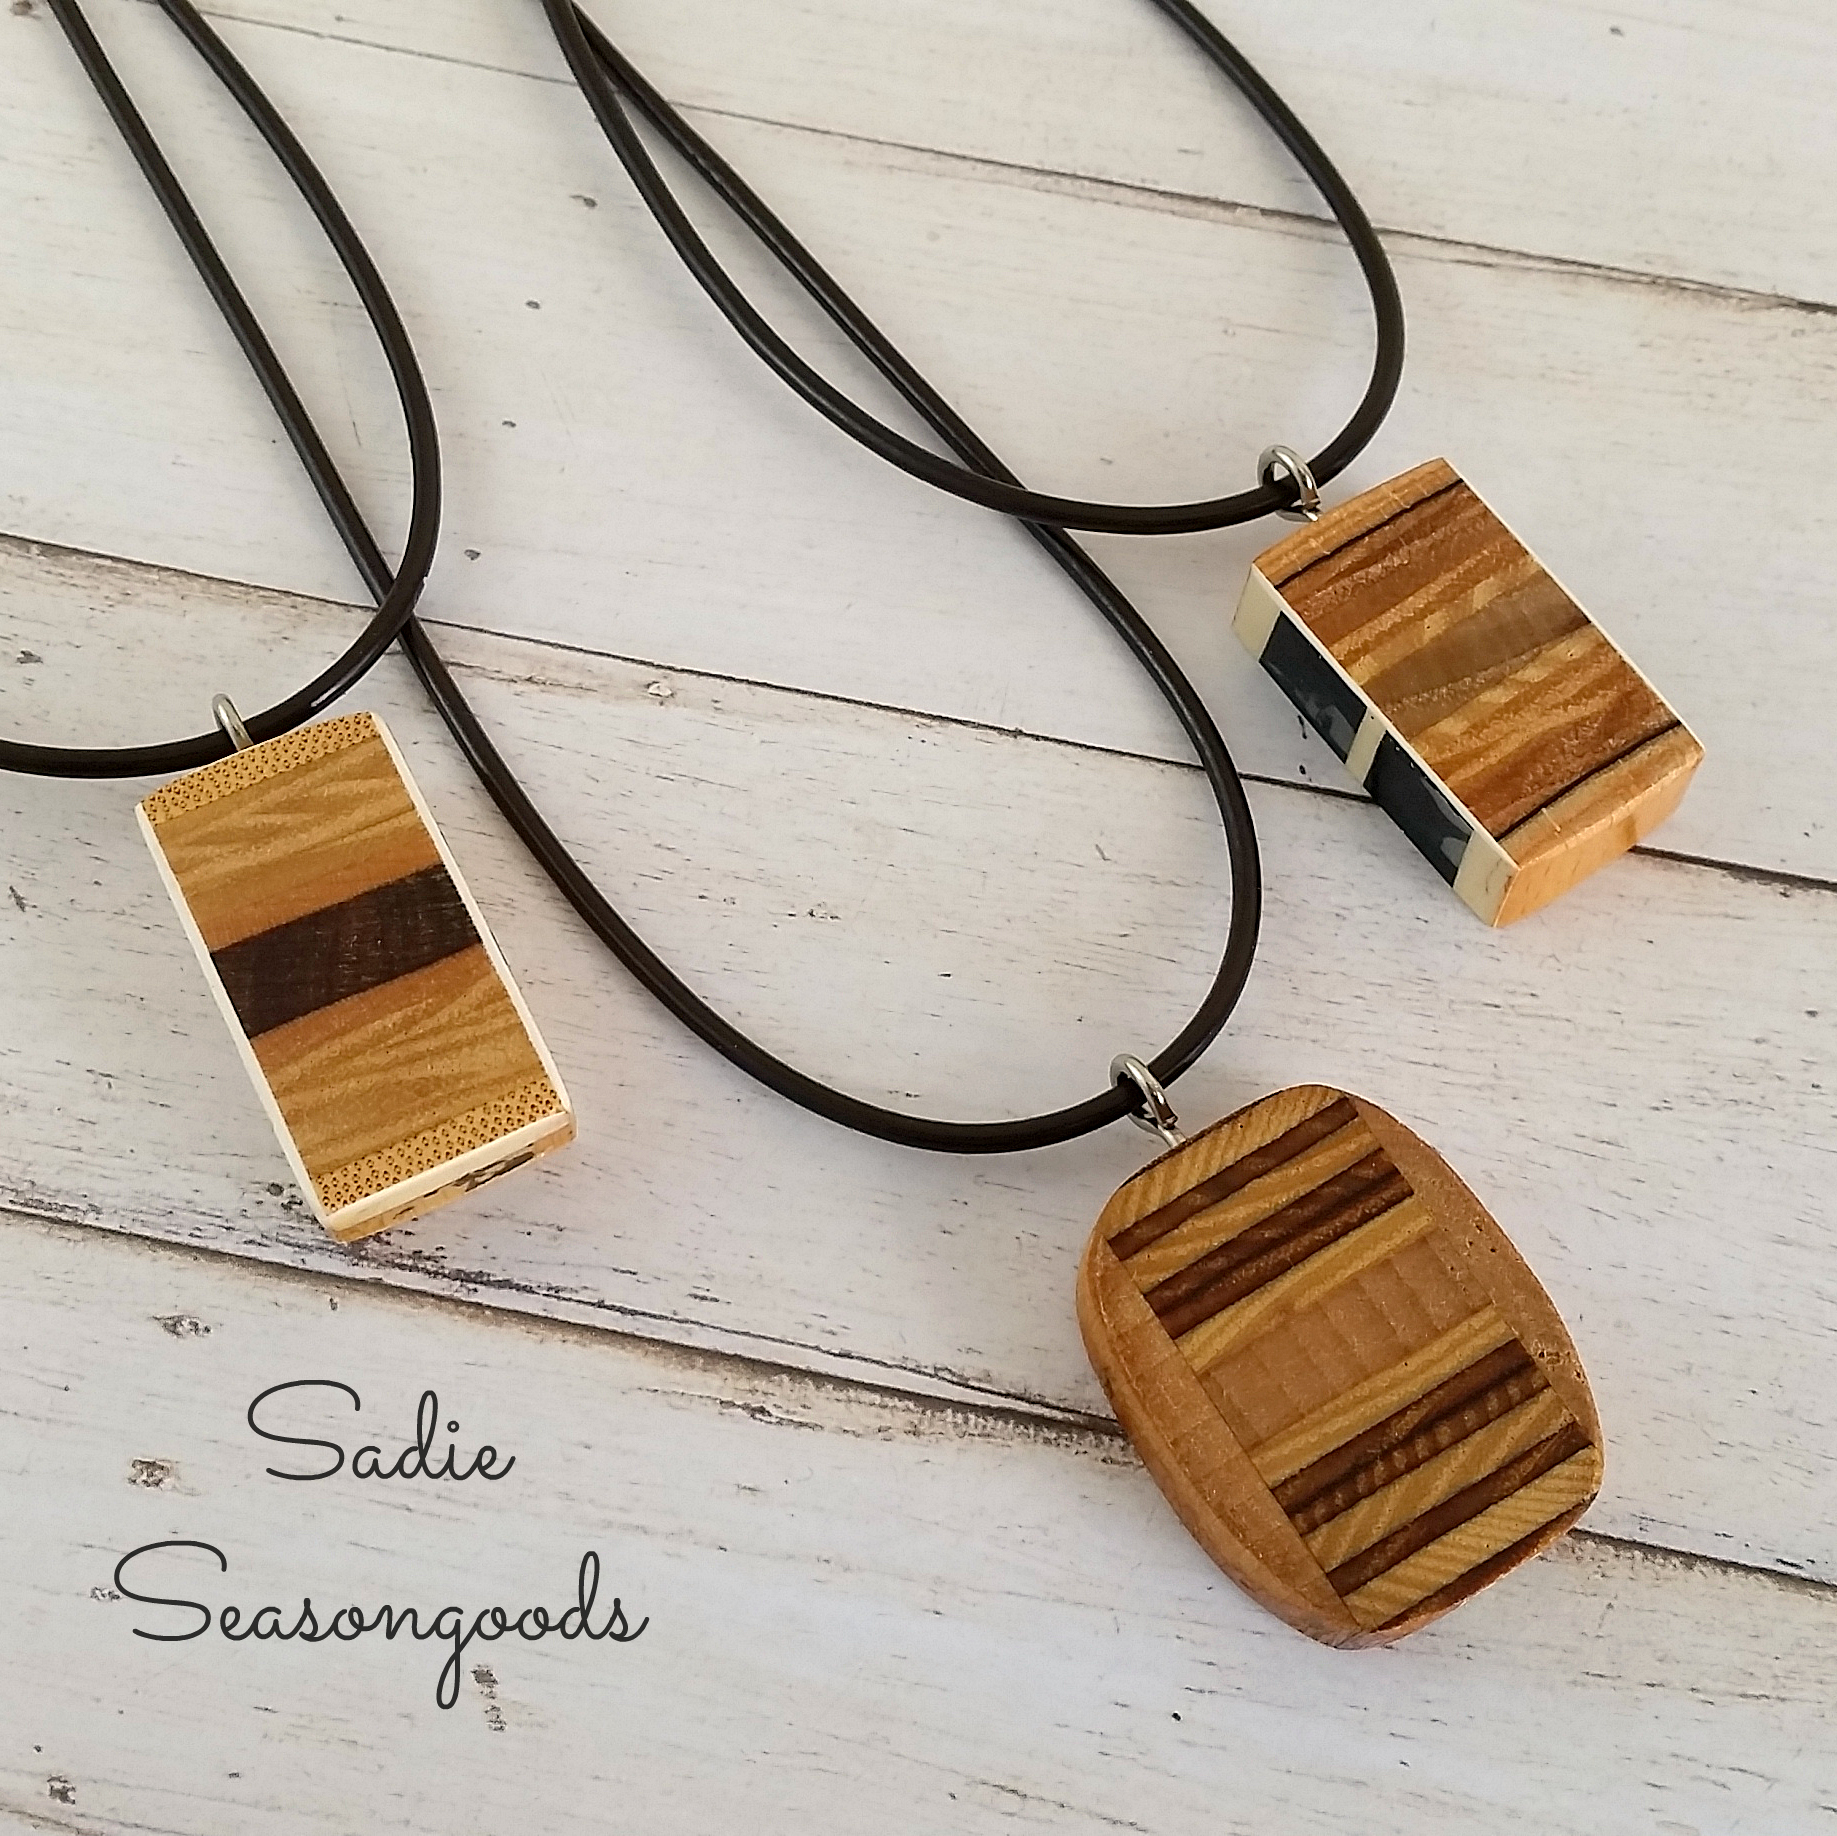 DIY Wood Pendants from Vintage Tennis Rackets from Sadie Seasongoods